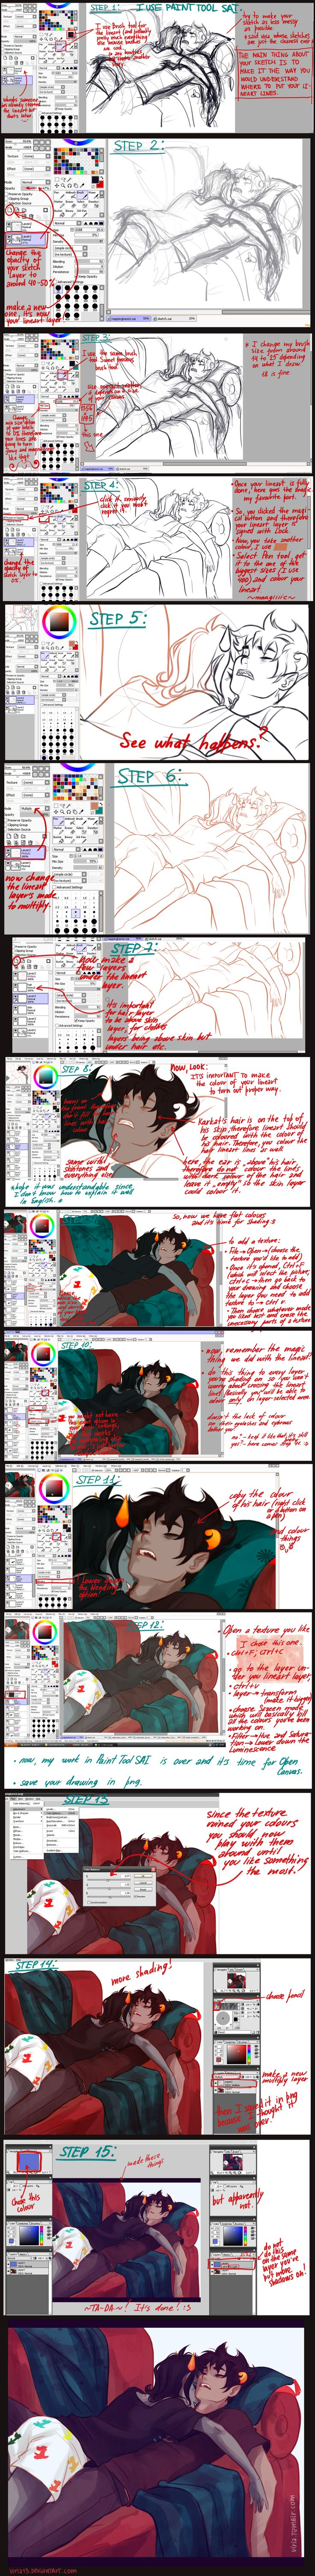 Photoshop tutorial on how to colour. The artist is amazing. Tute covers from rough sketch to final piece. Very easy to understand and humourous! ^.^